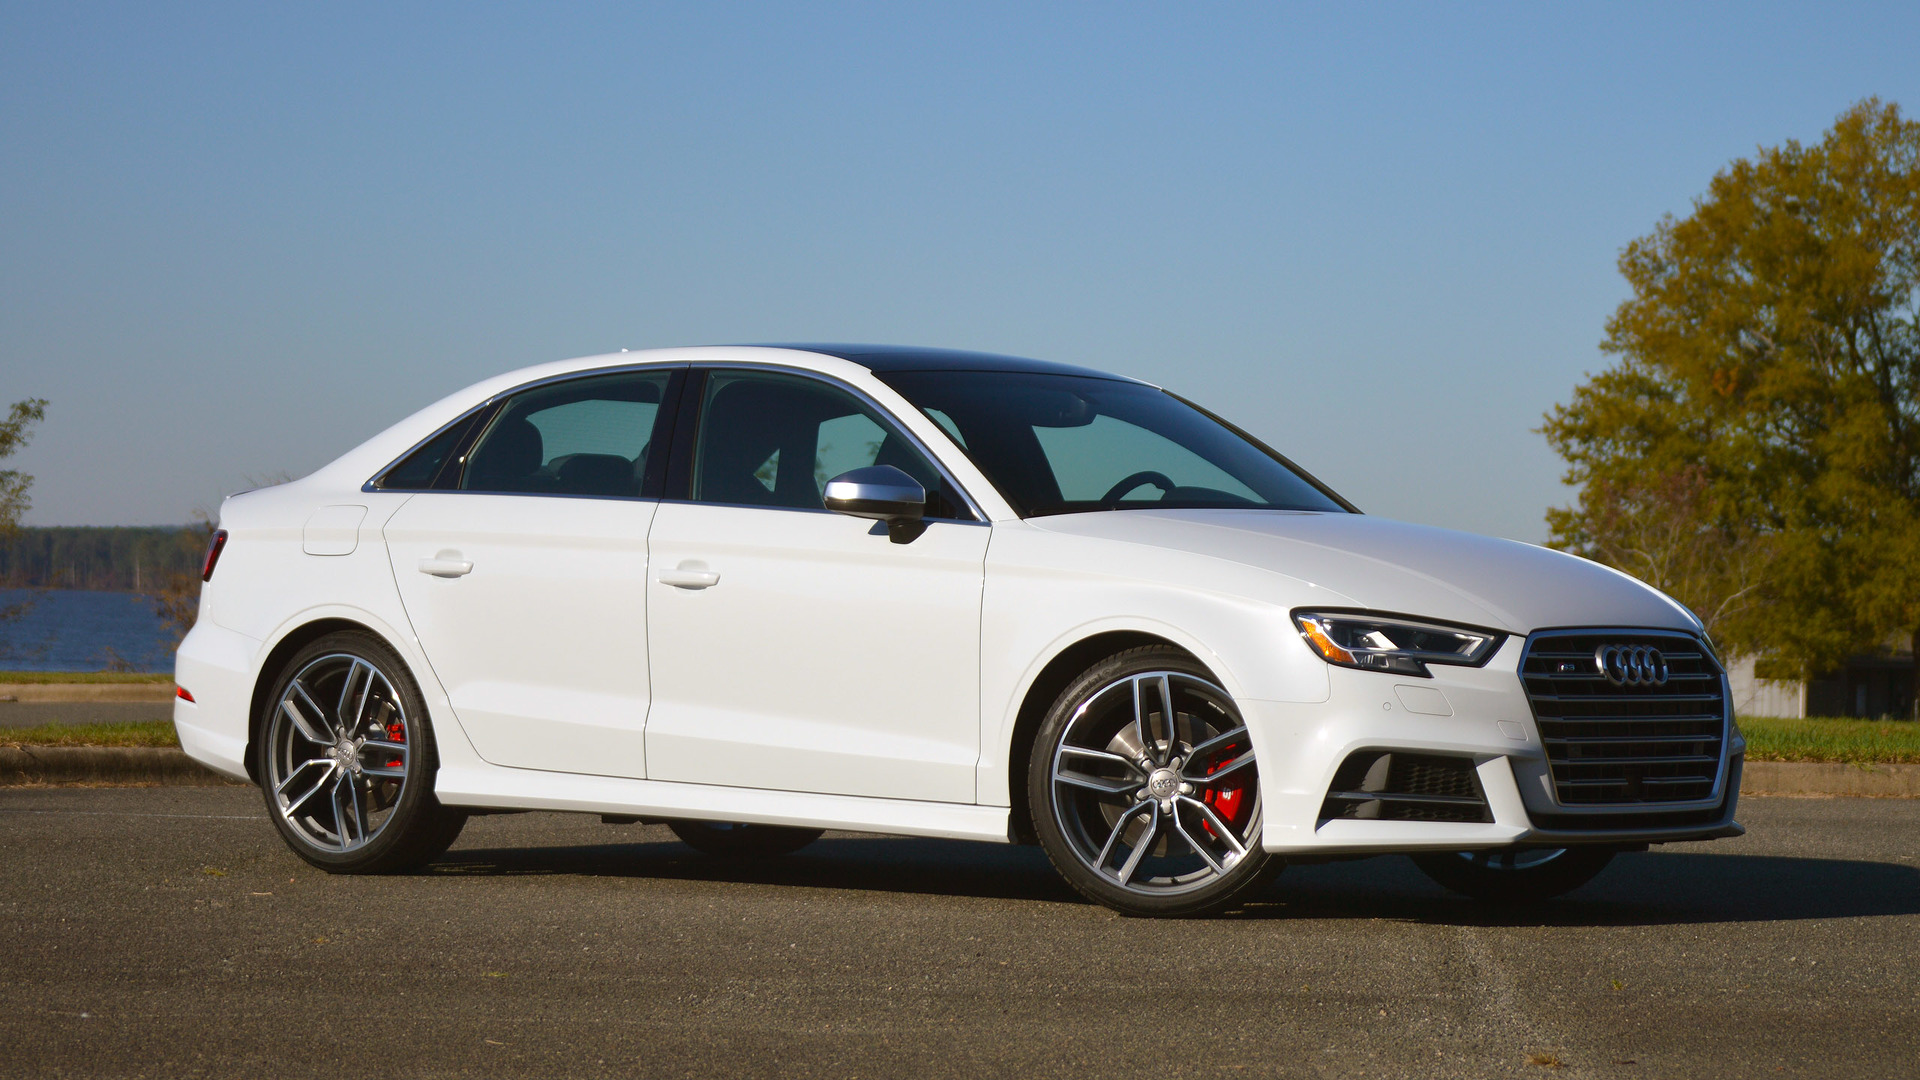 Audi S3 Cars  Gumtree Classifieds South Africa  P4